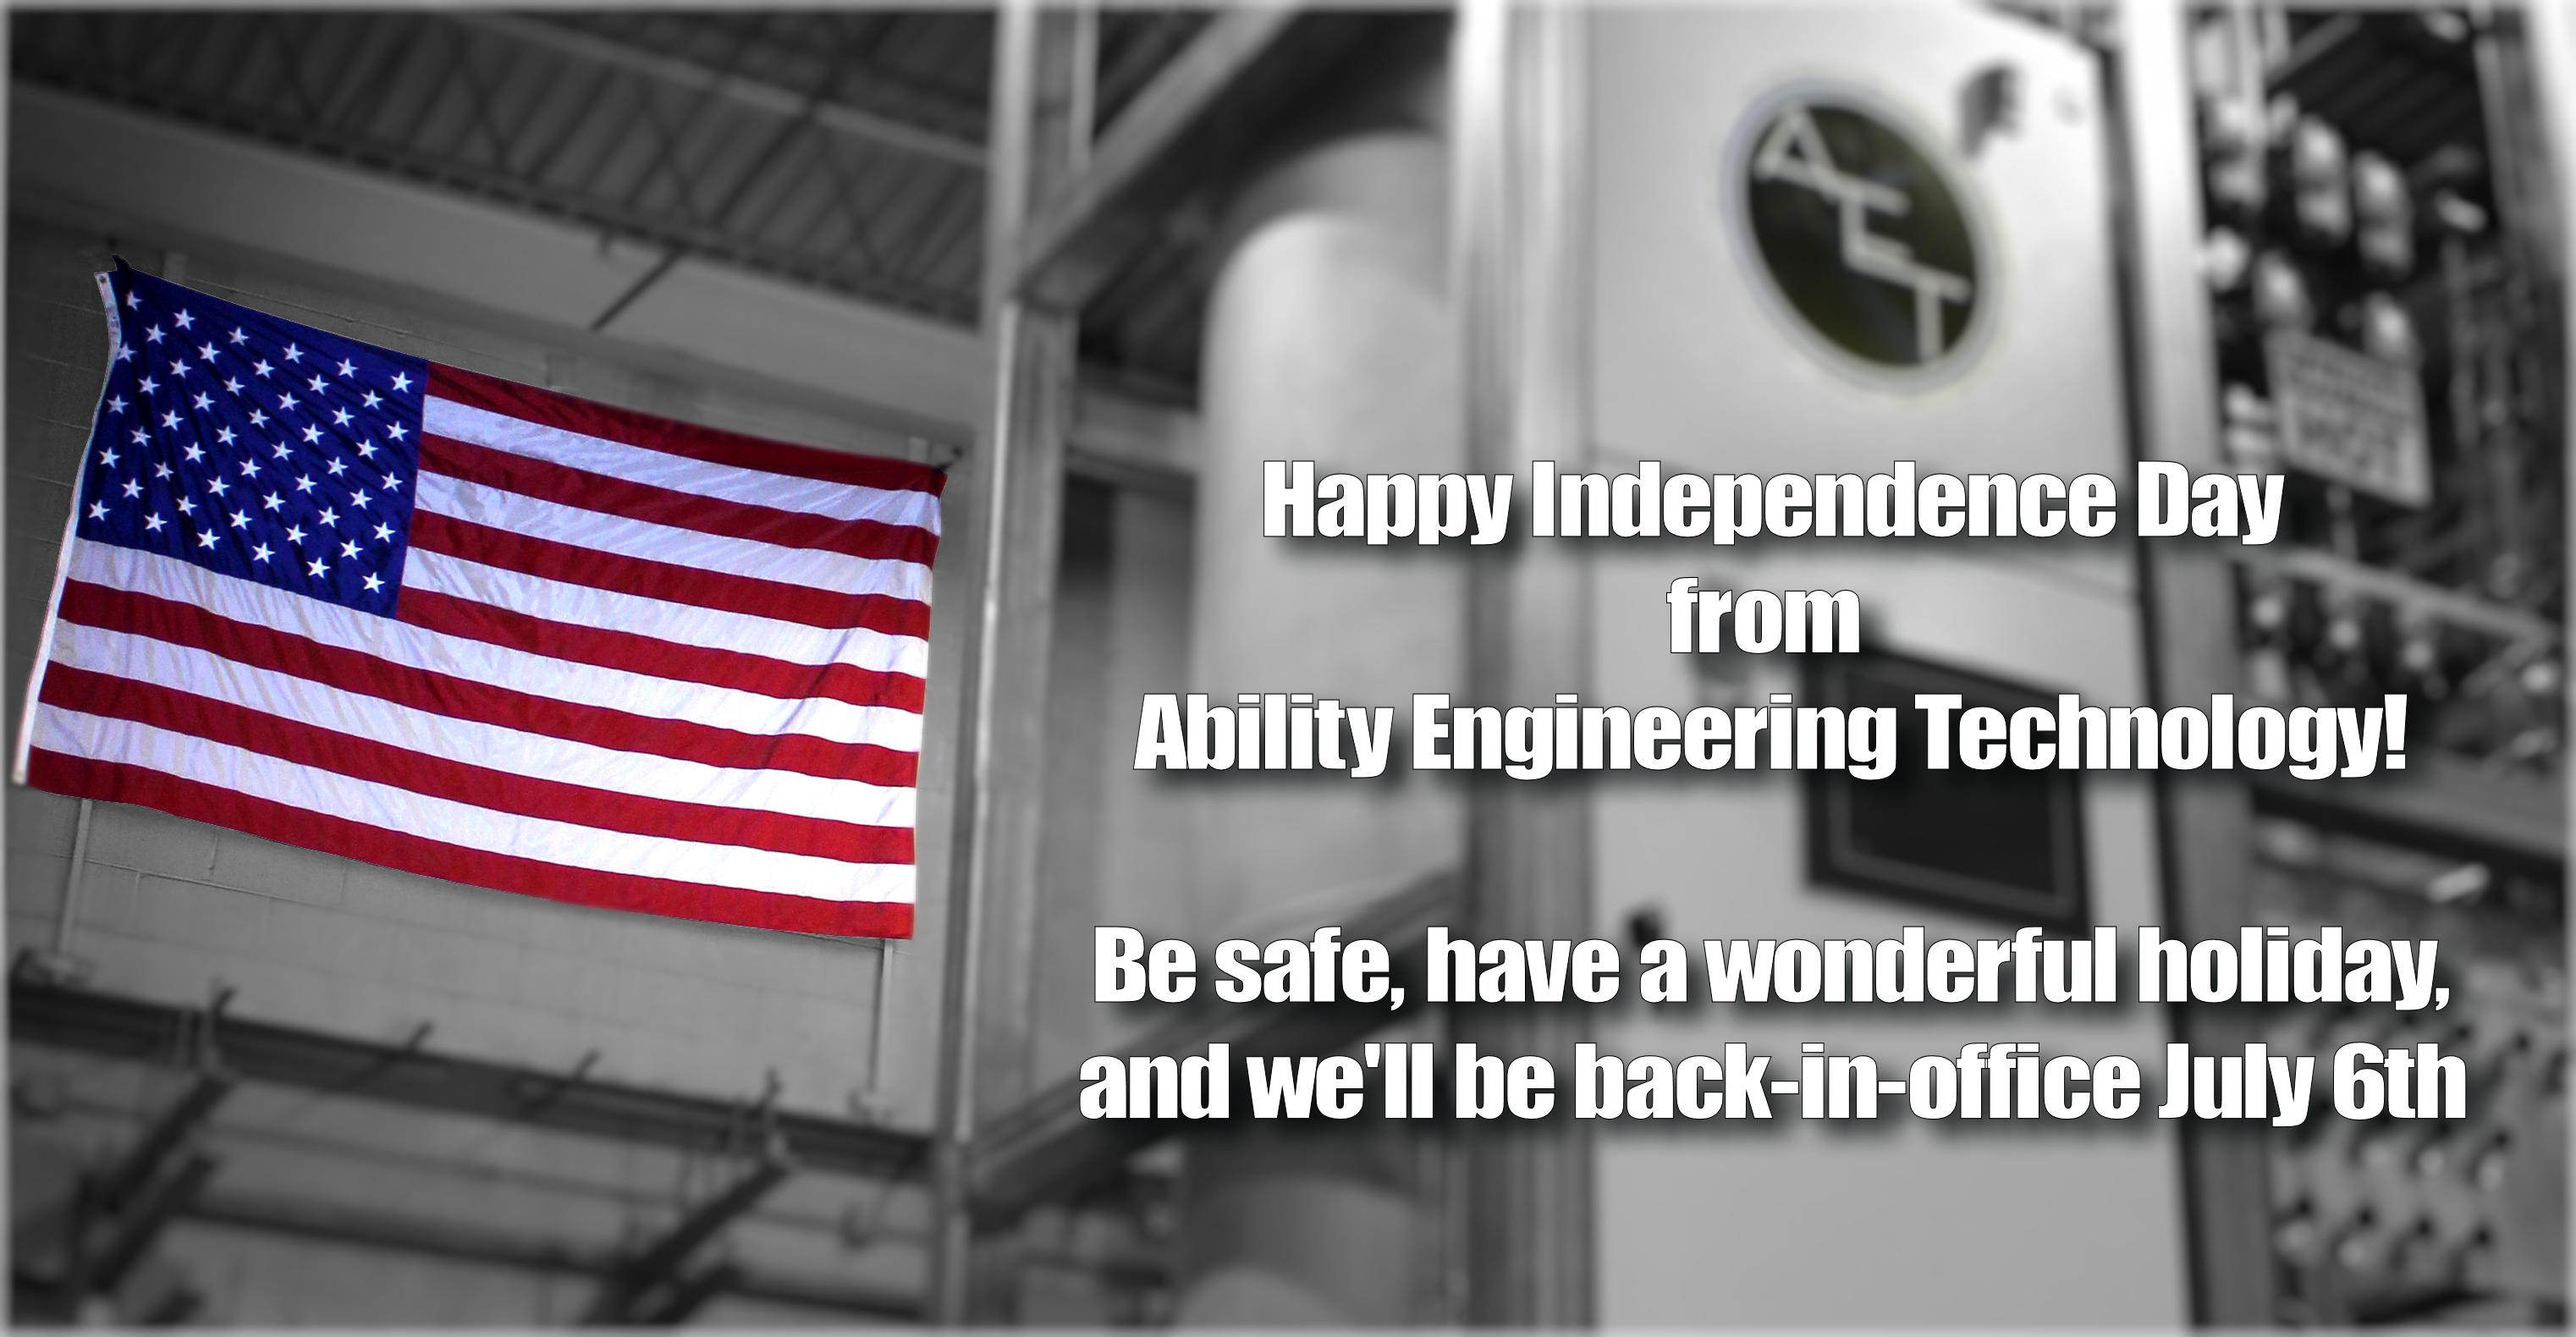 aet_independence_day_2021.jpg